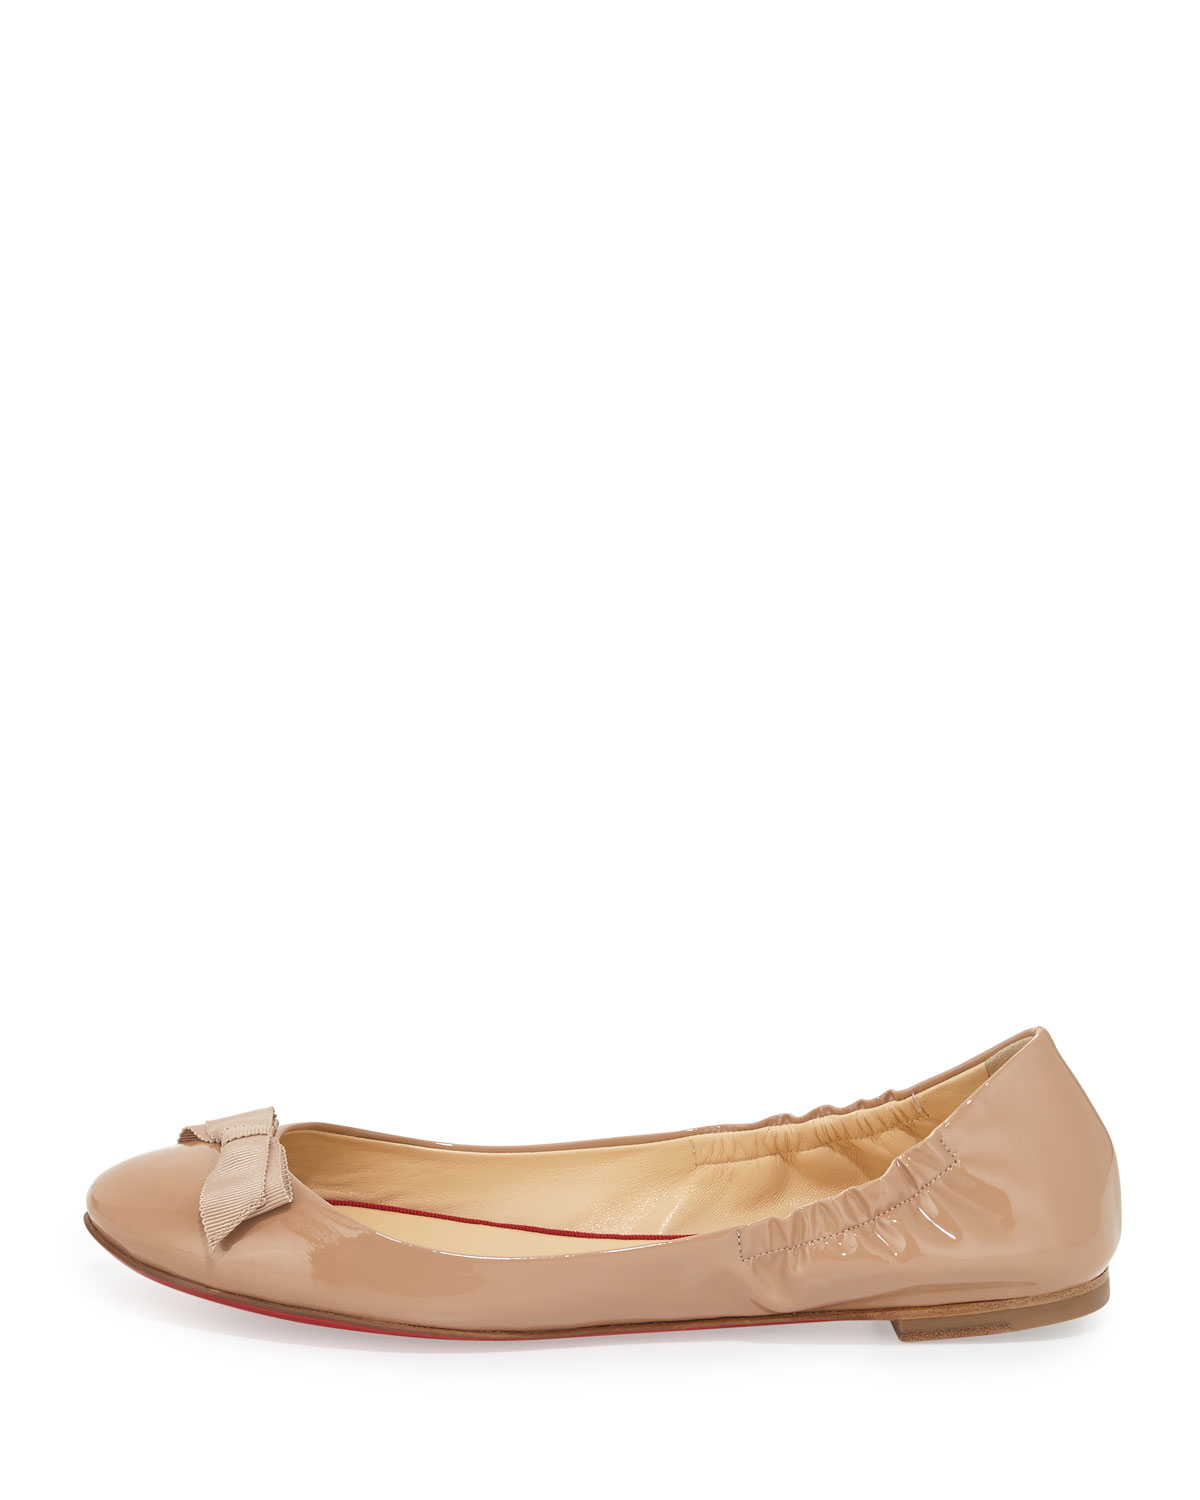 christian louboutin knockoffs - Christian louboutin Gloriana Patent-Leather Ballet Flats in Beige ...